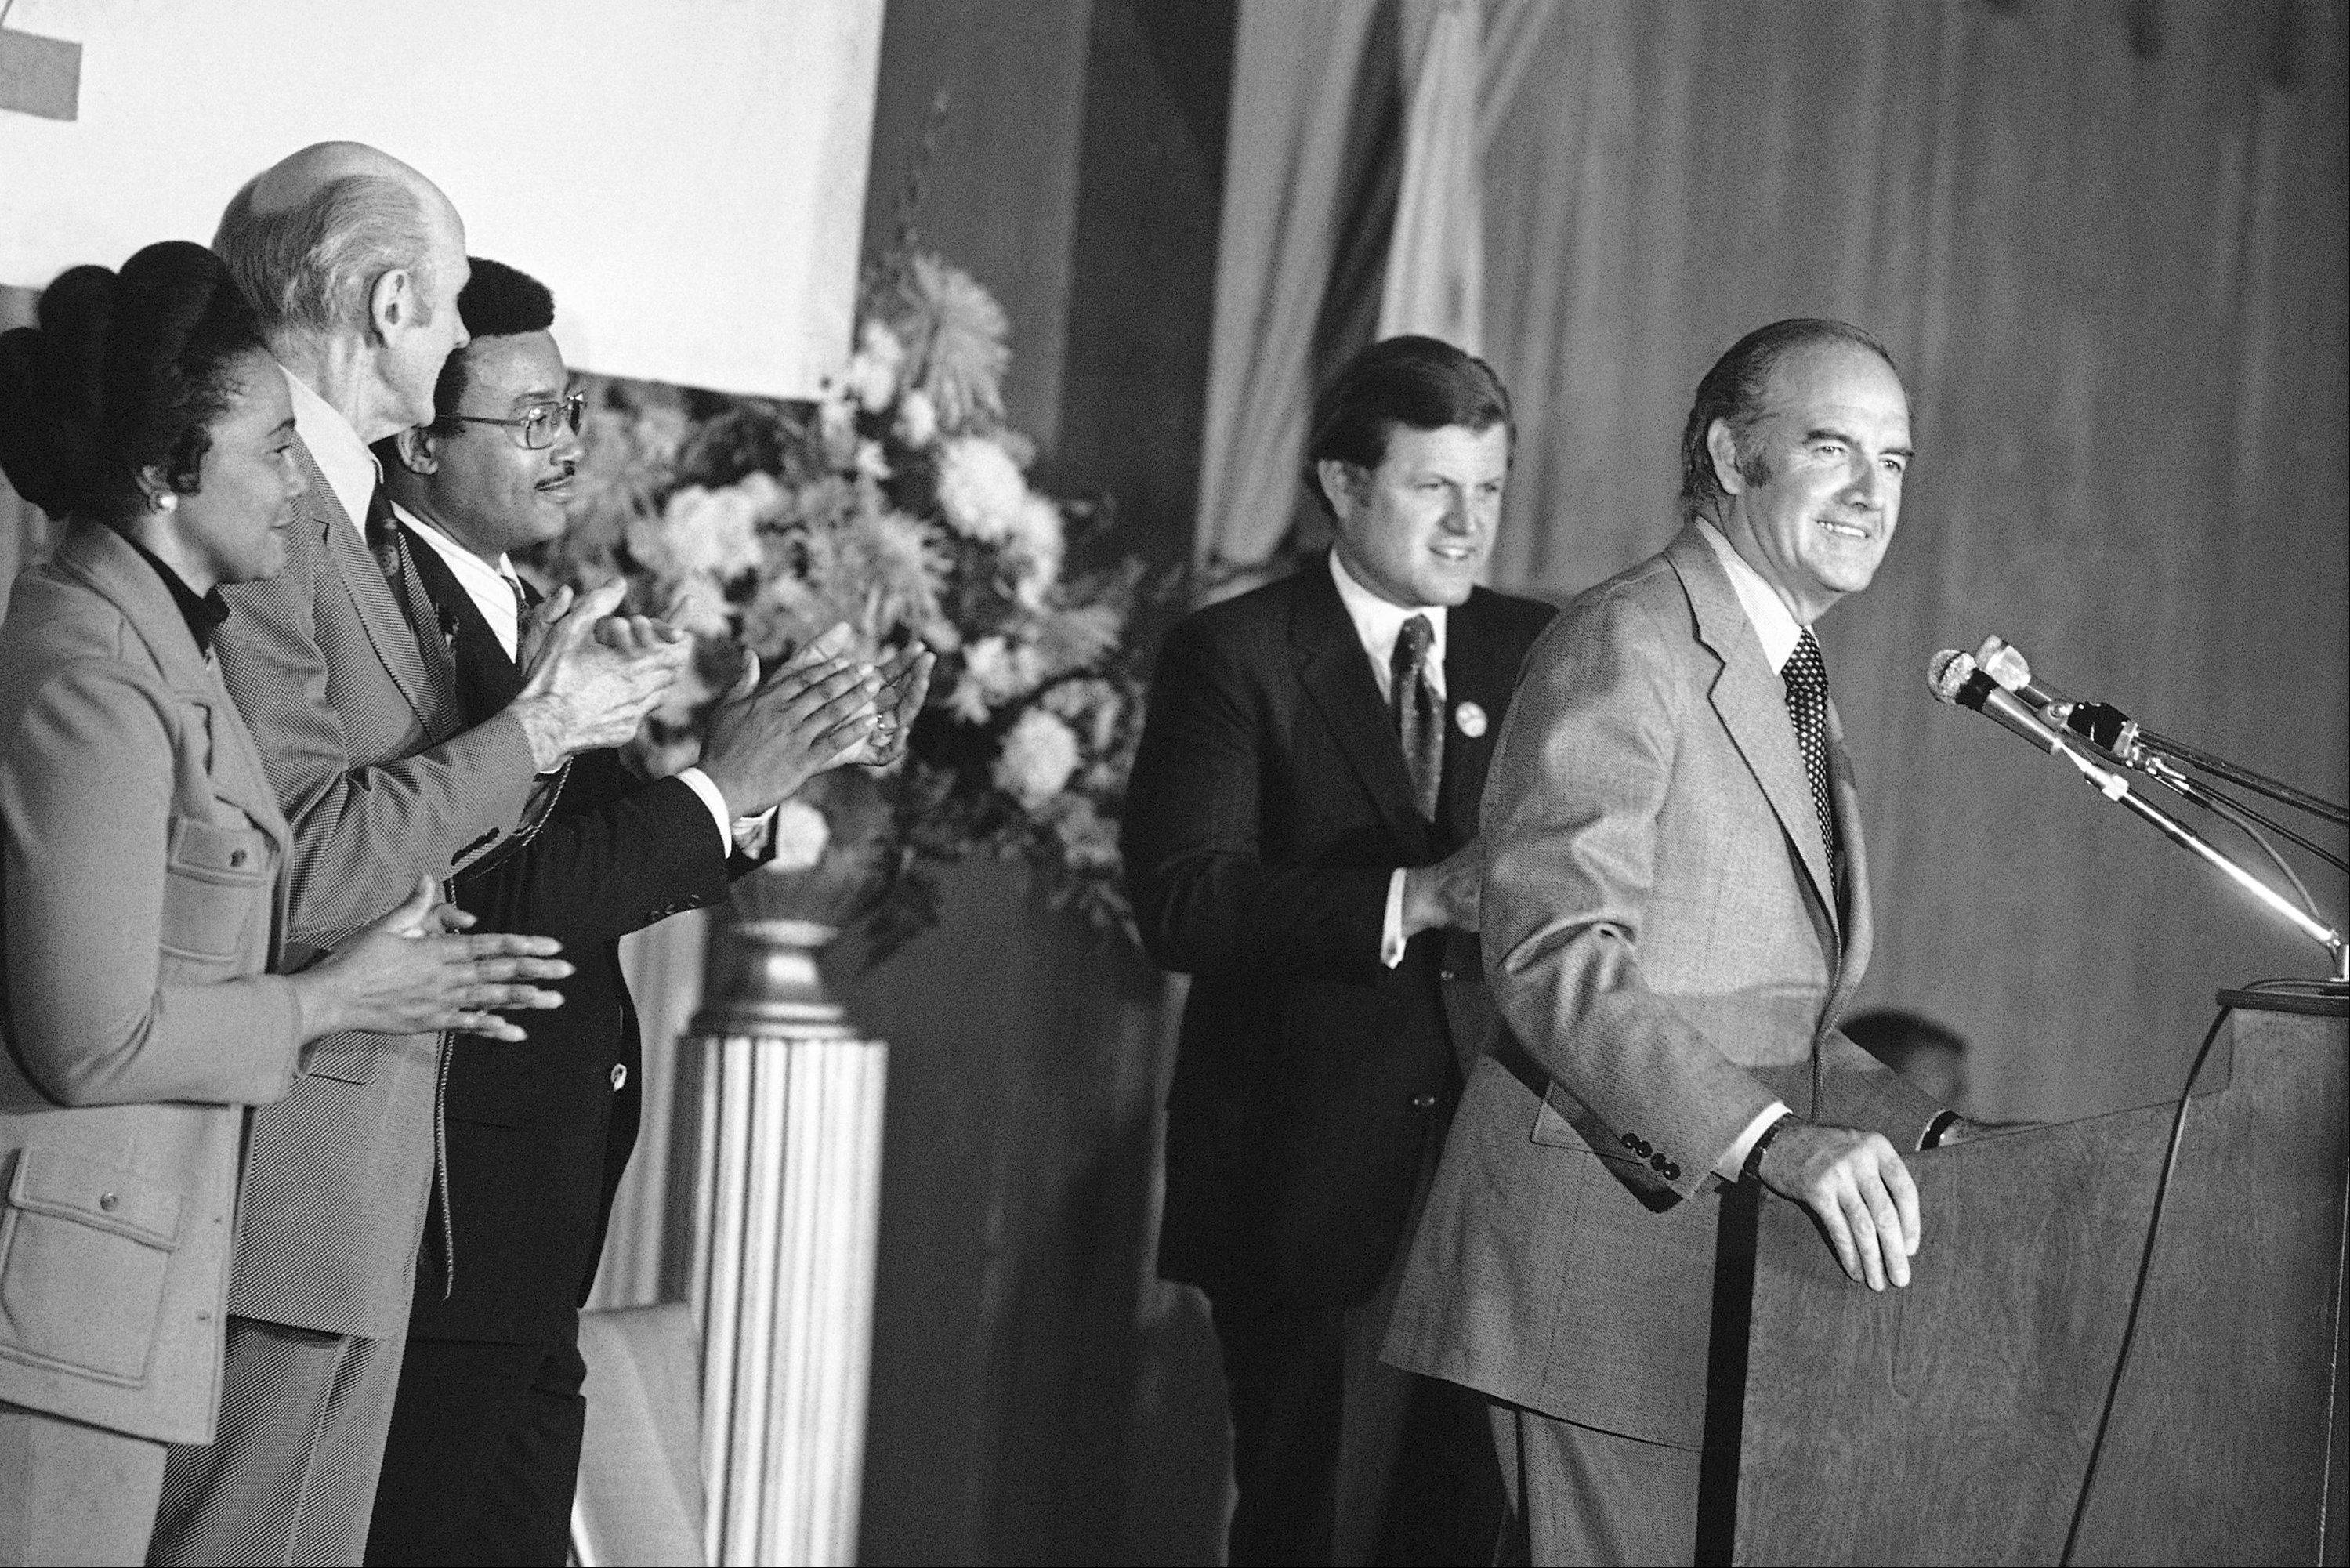 Sen. Edward M. Kennedy doubles over with laughter from a mild needle injected by Sen. George S. McGovern in Los Angeles, Friday, Oct. 27, 1972 at a luncheon for building trades union representatives.